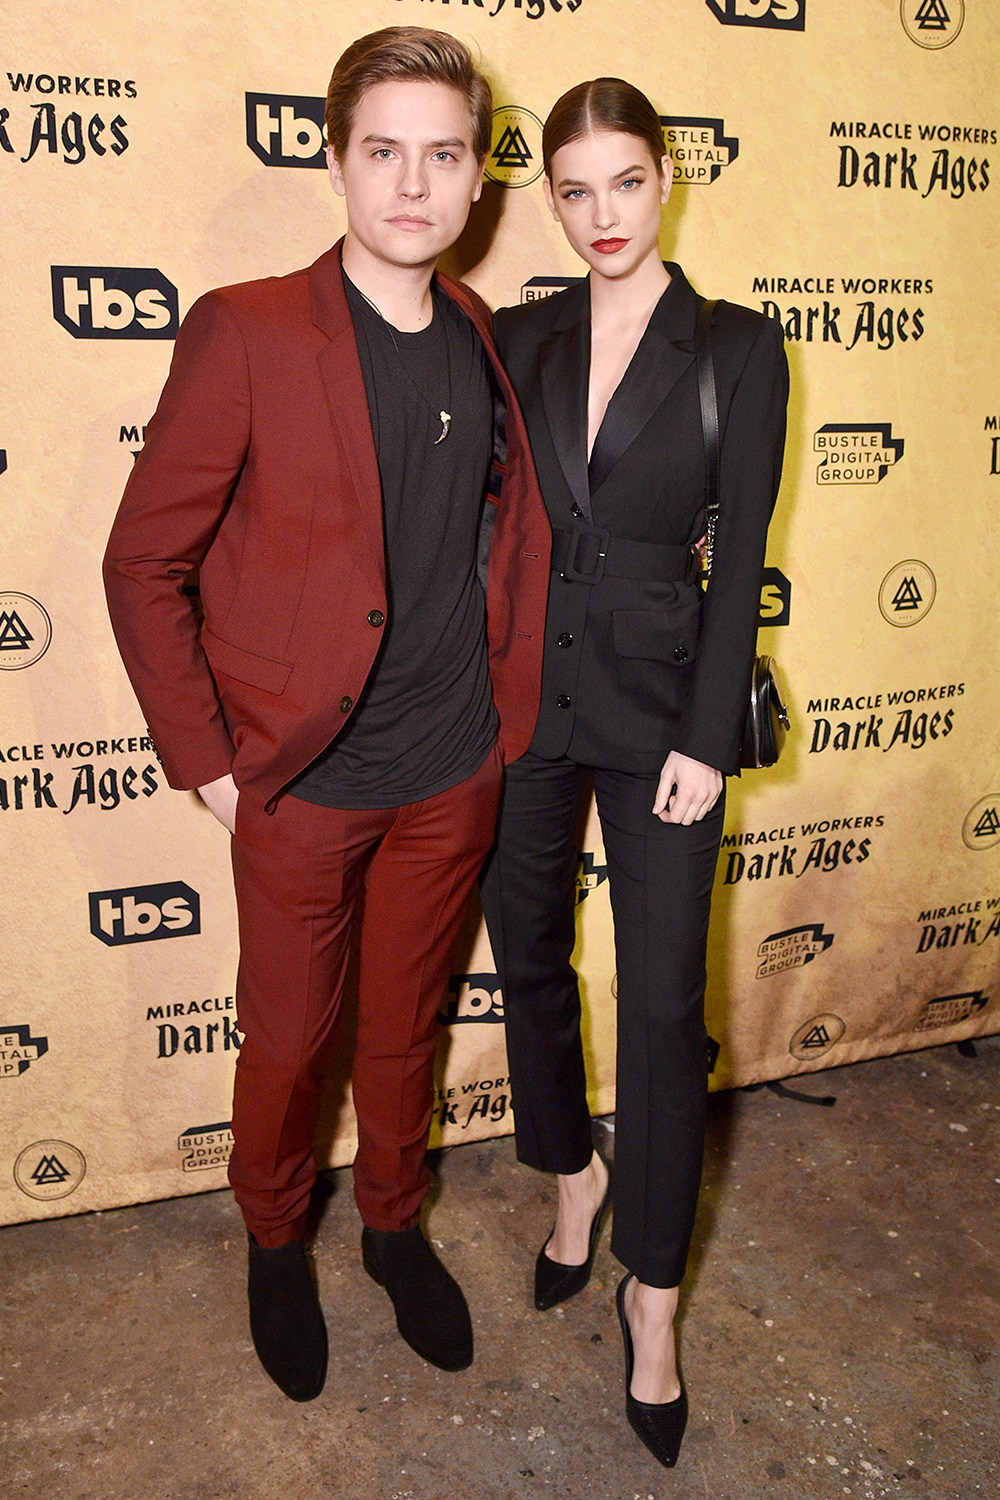 """Dylan Sprouse and Barbara Palvin attend """"Miracle Workers: Dark Ages"""" premiere And MEADia event at Houston Hall on January 22, 2020 in New York City"""